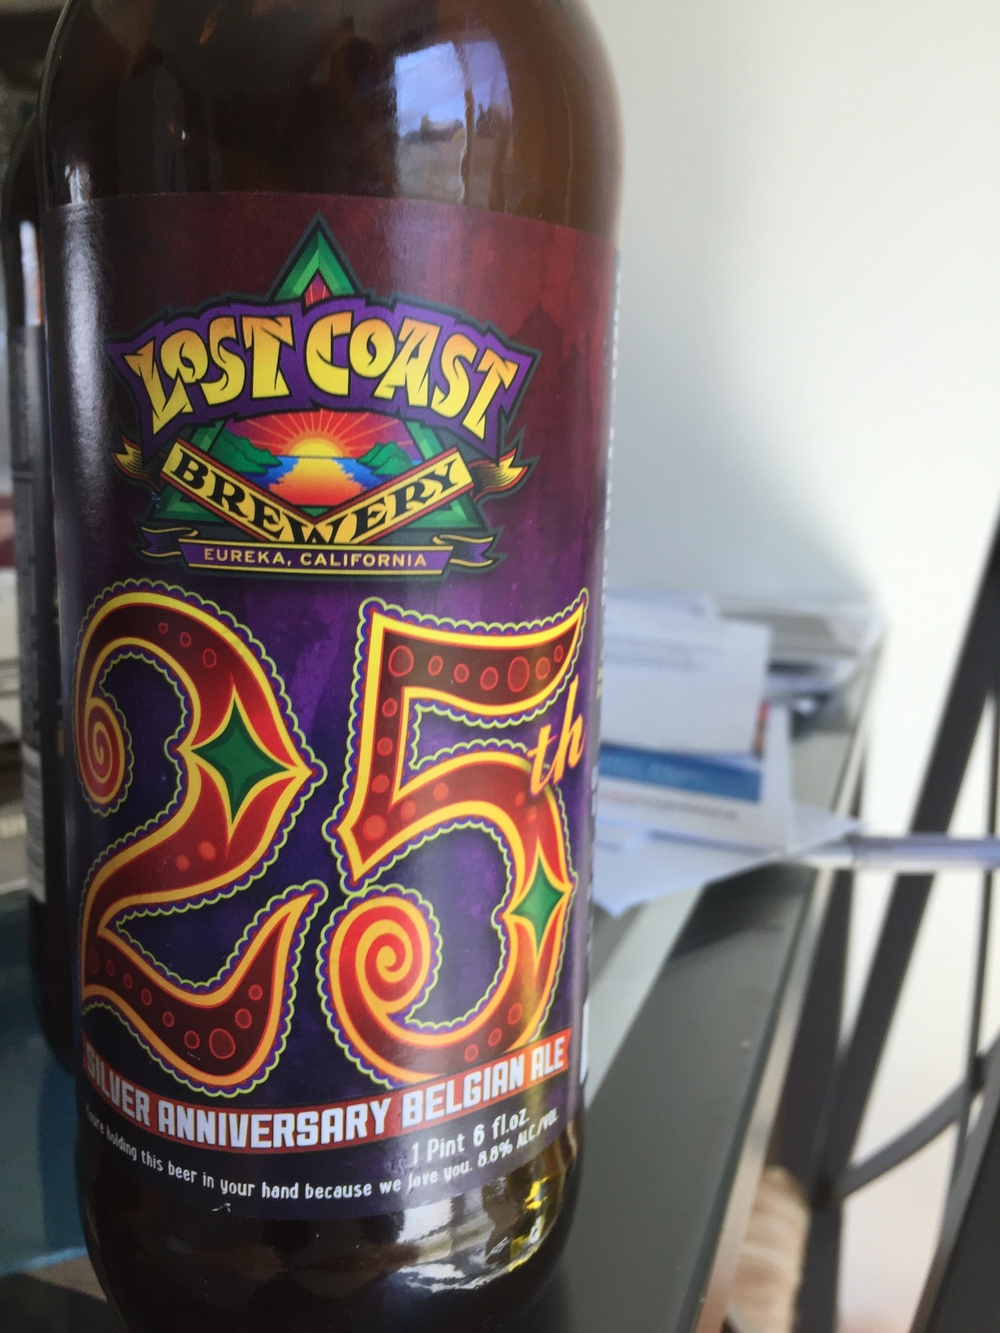 Lost Coast Brewery 25th Anniversary Belgian